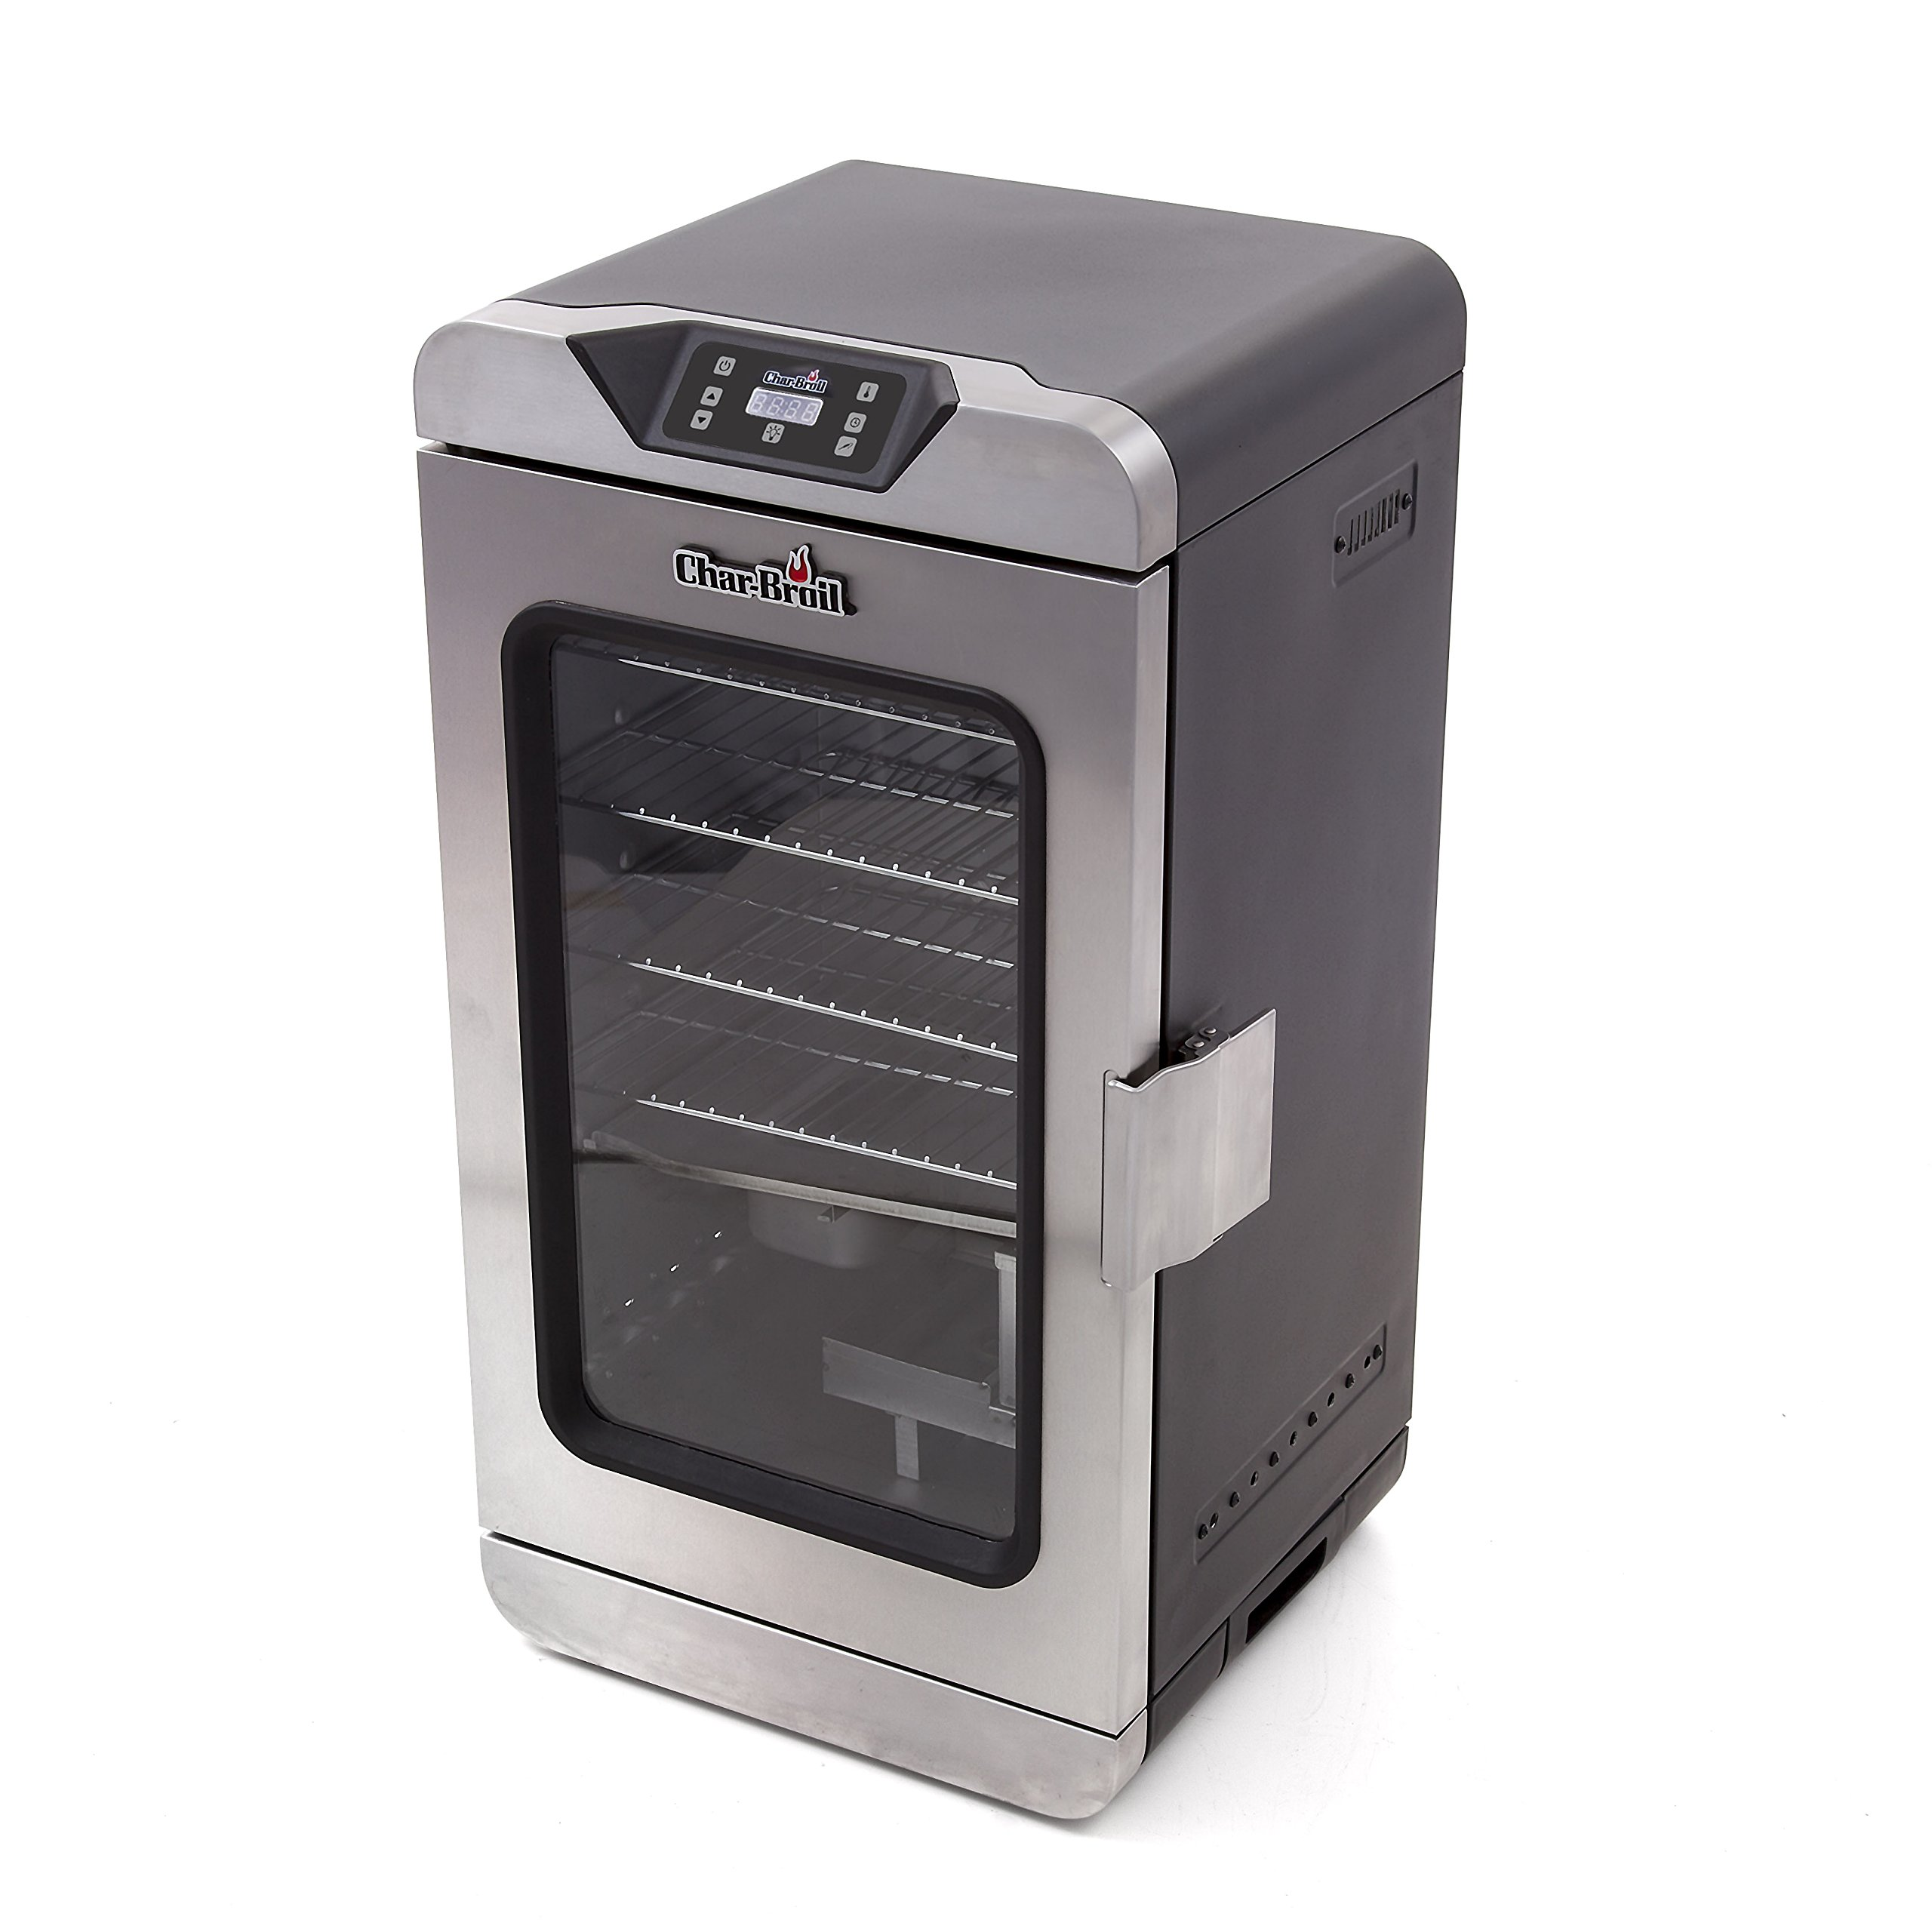 Char-Broil Deluxe Digital Electric Smoker, 725 Square Inch by Char-Broil